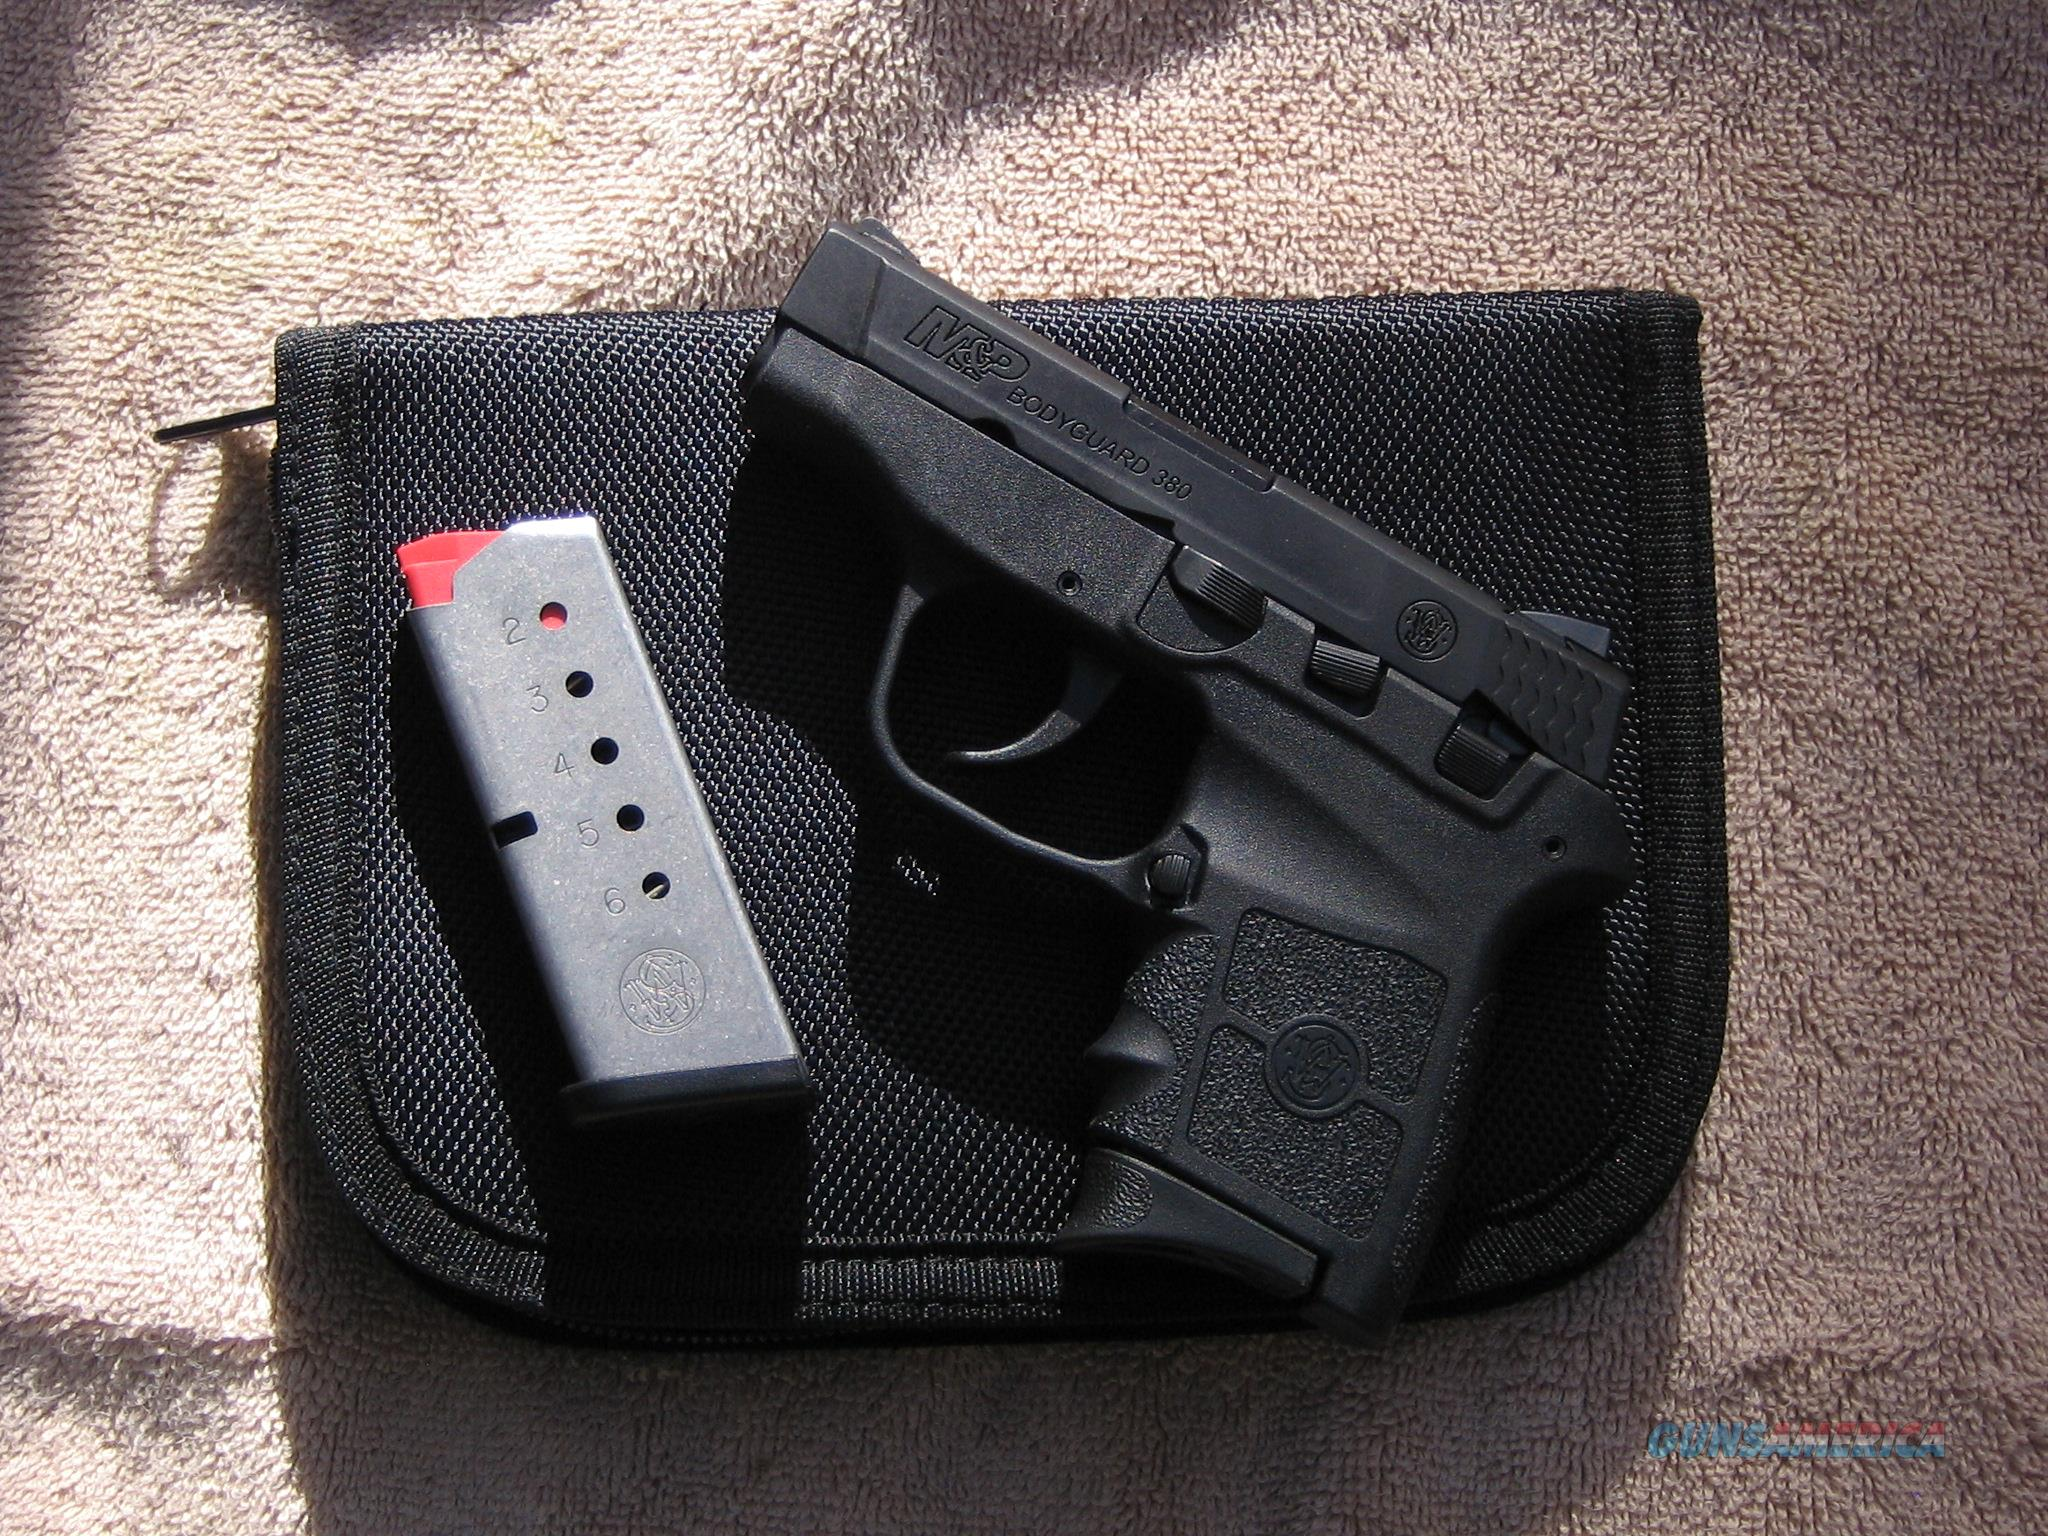 M&P Bodyguard .380 -- new in box  Guns > Pistols > Smith & Wesson Pistols - Autos > Polymer Frame